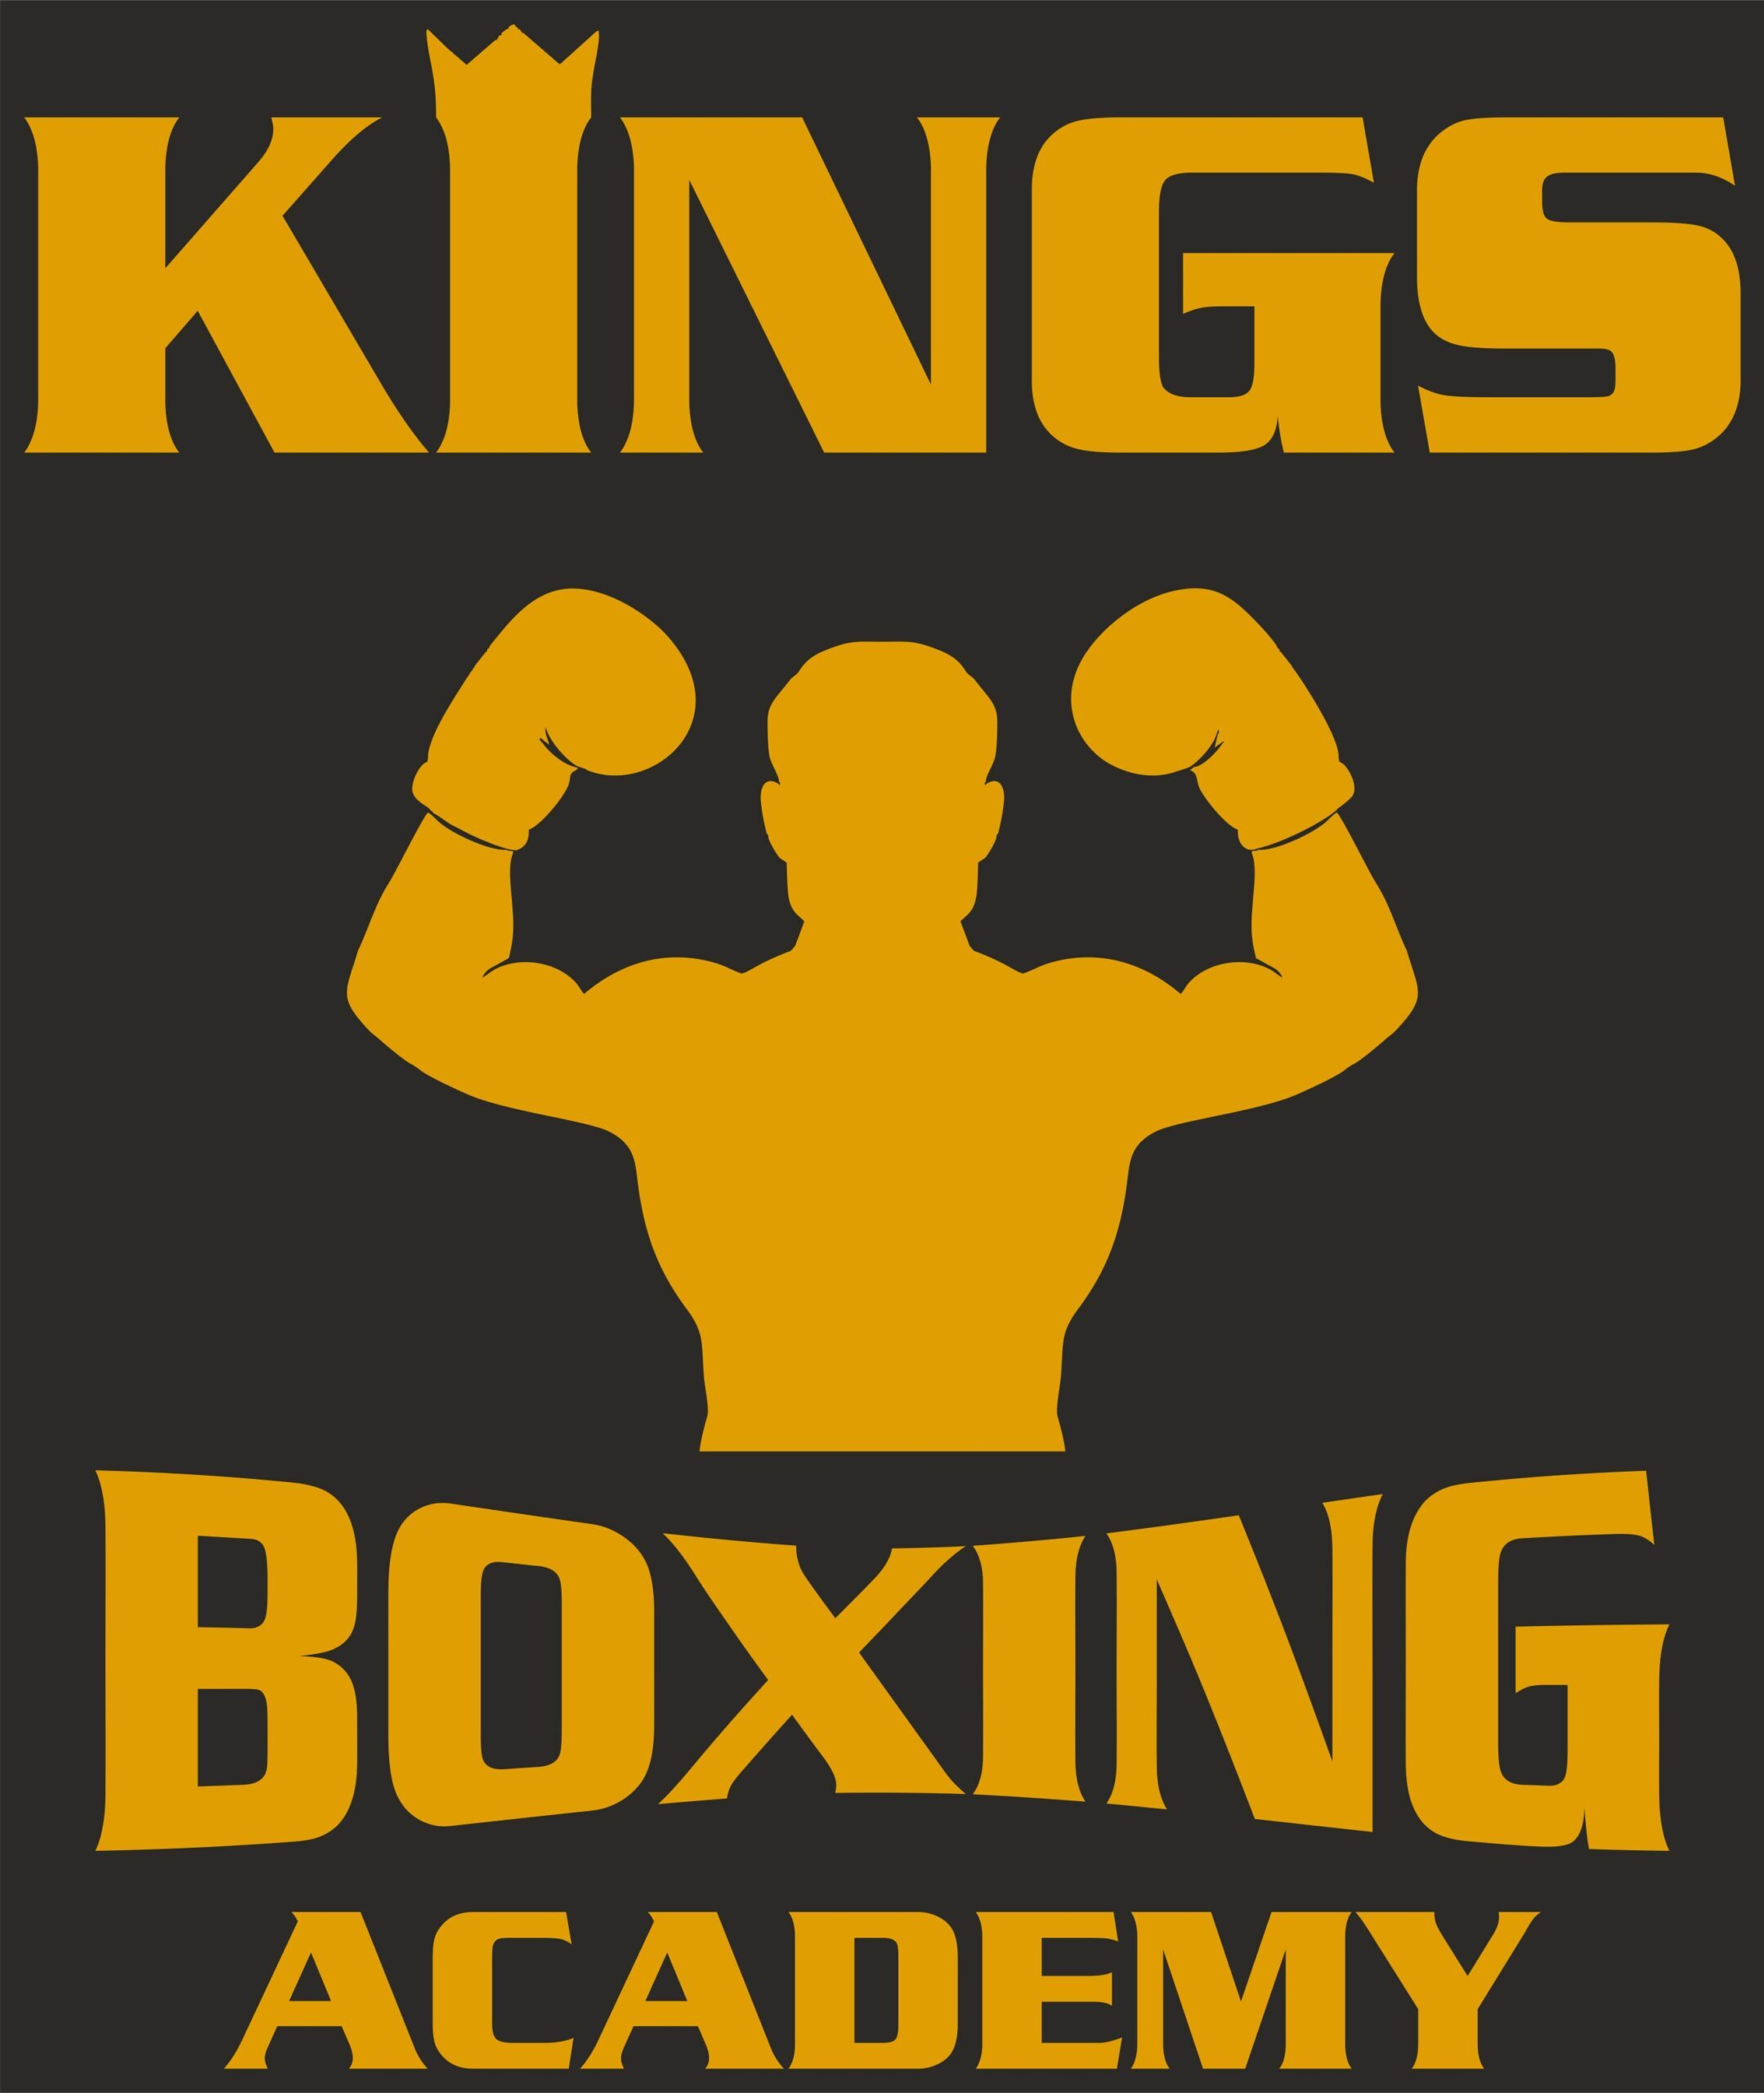 Kings Boxing Academy